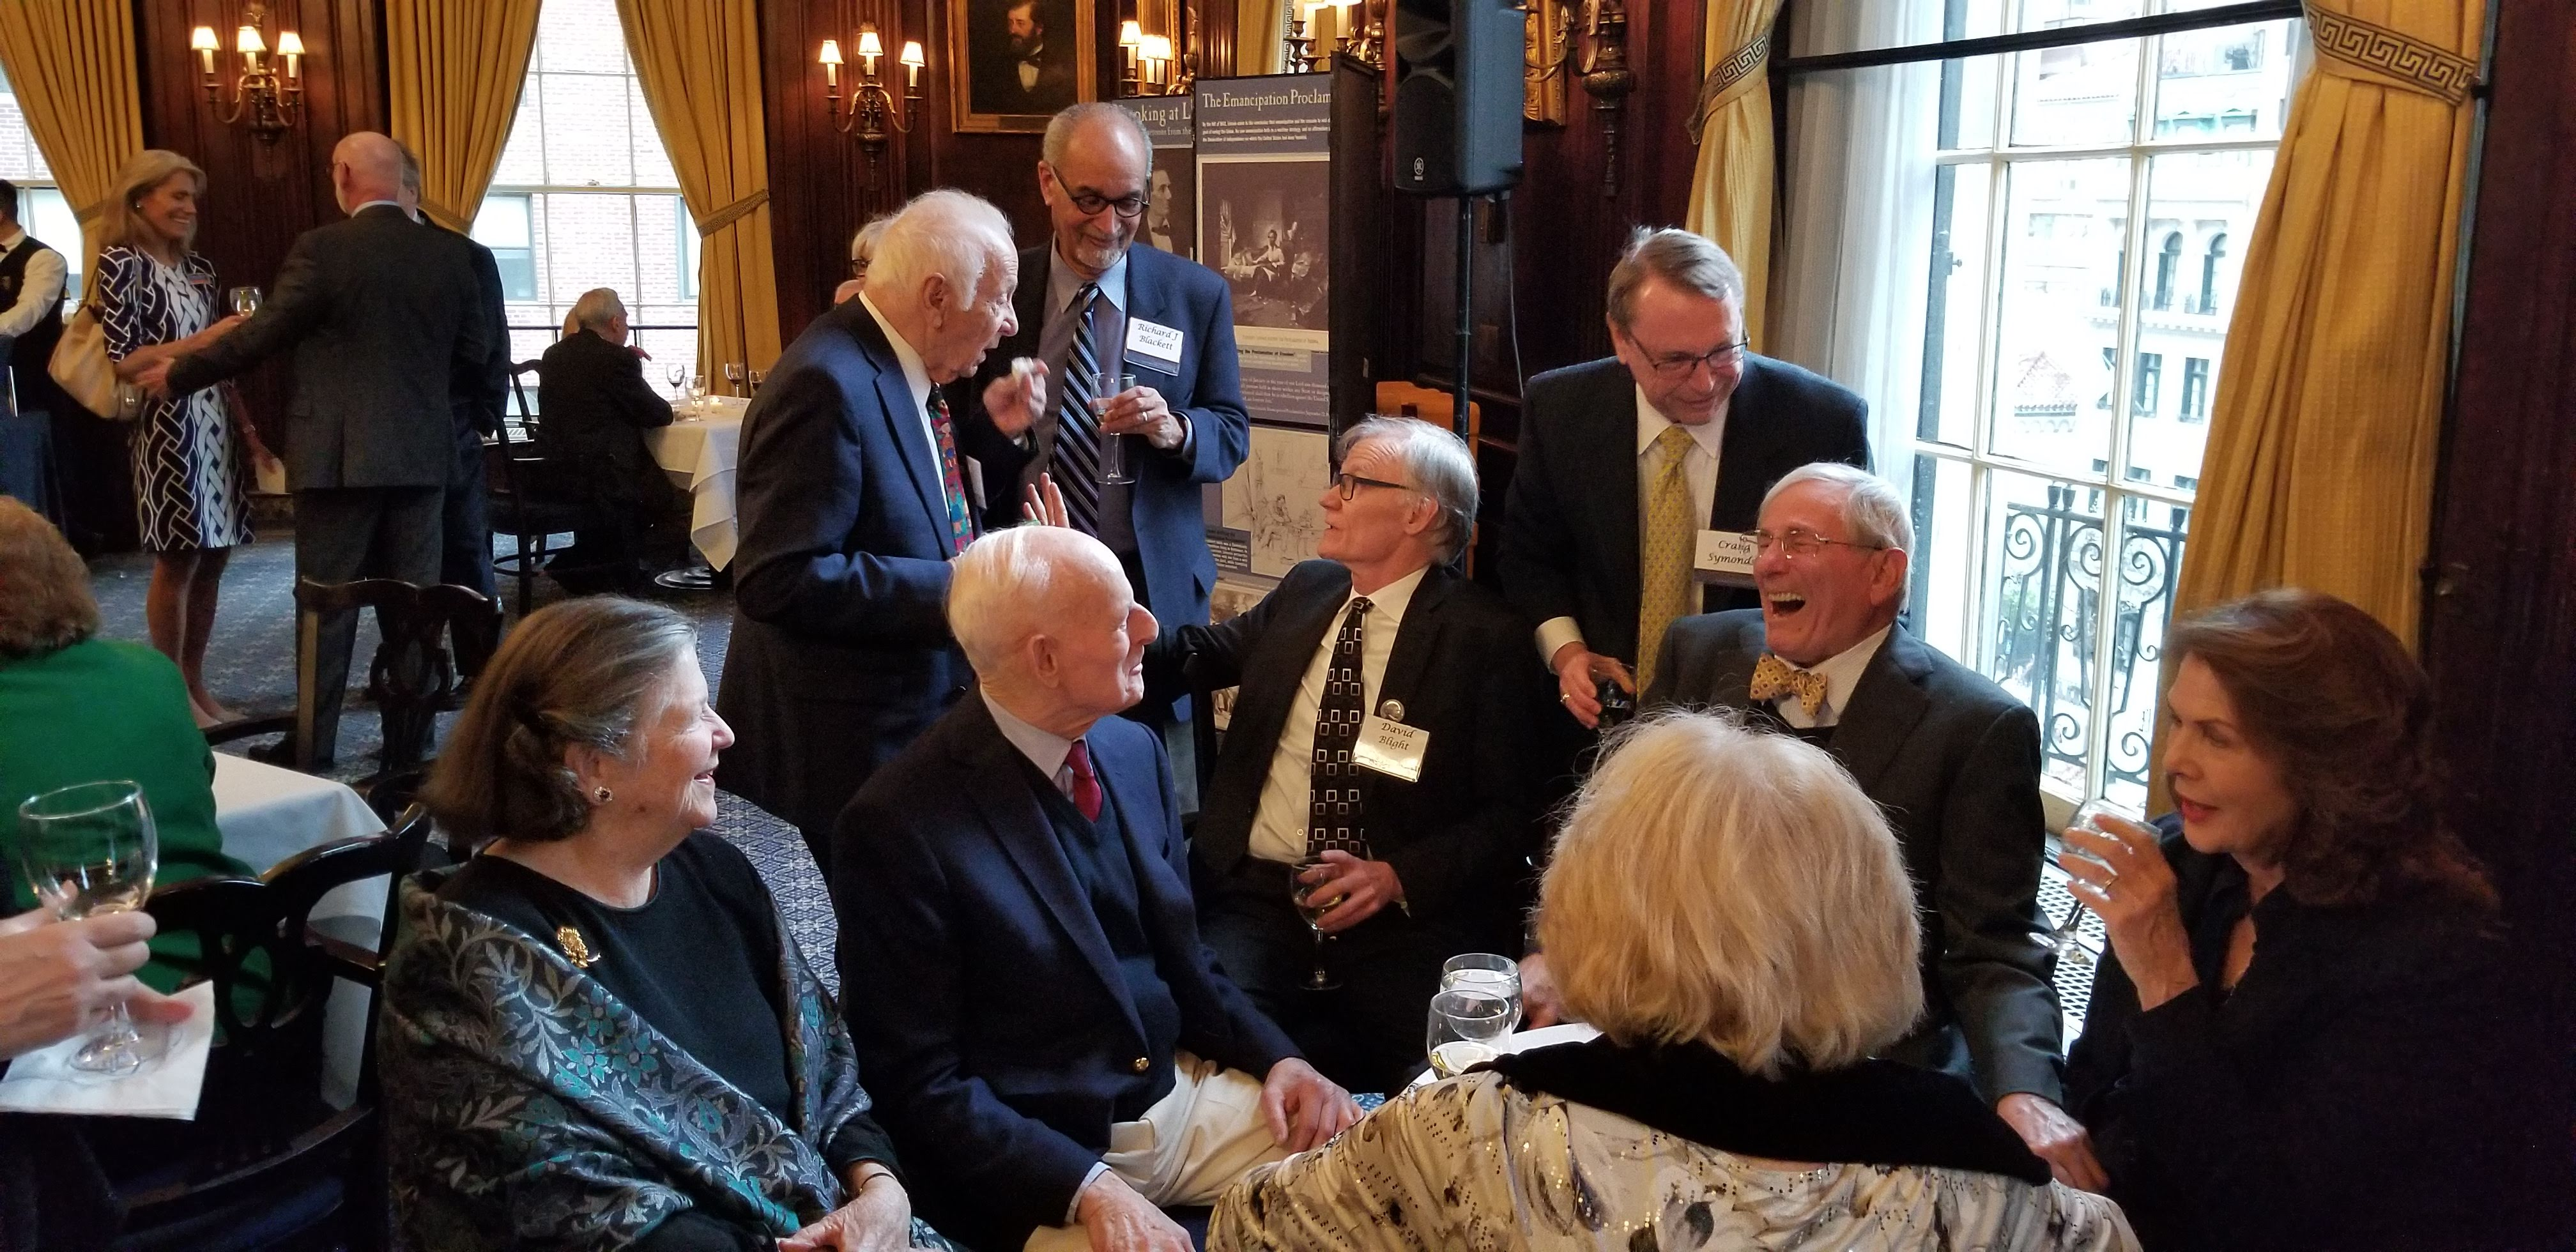 Lewis Lehrman, Richard J. M. Blackett, David Blight, and Richard Gilder before the 2019 Lincoln Prize award ceremony